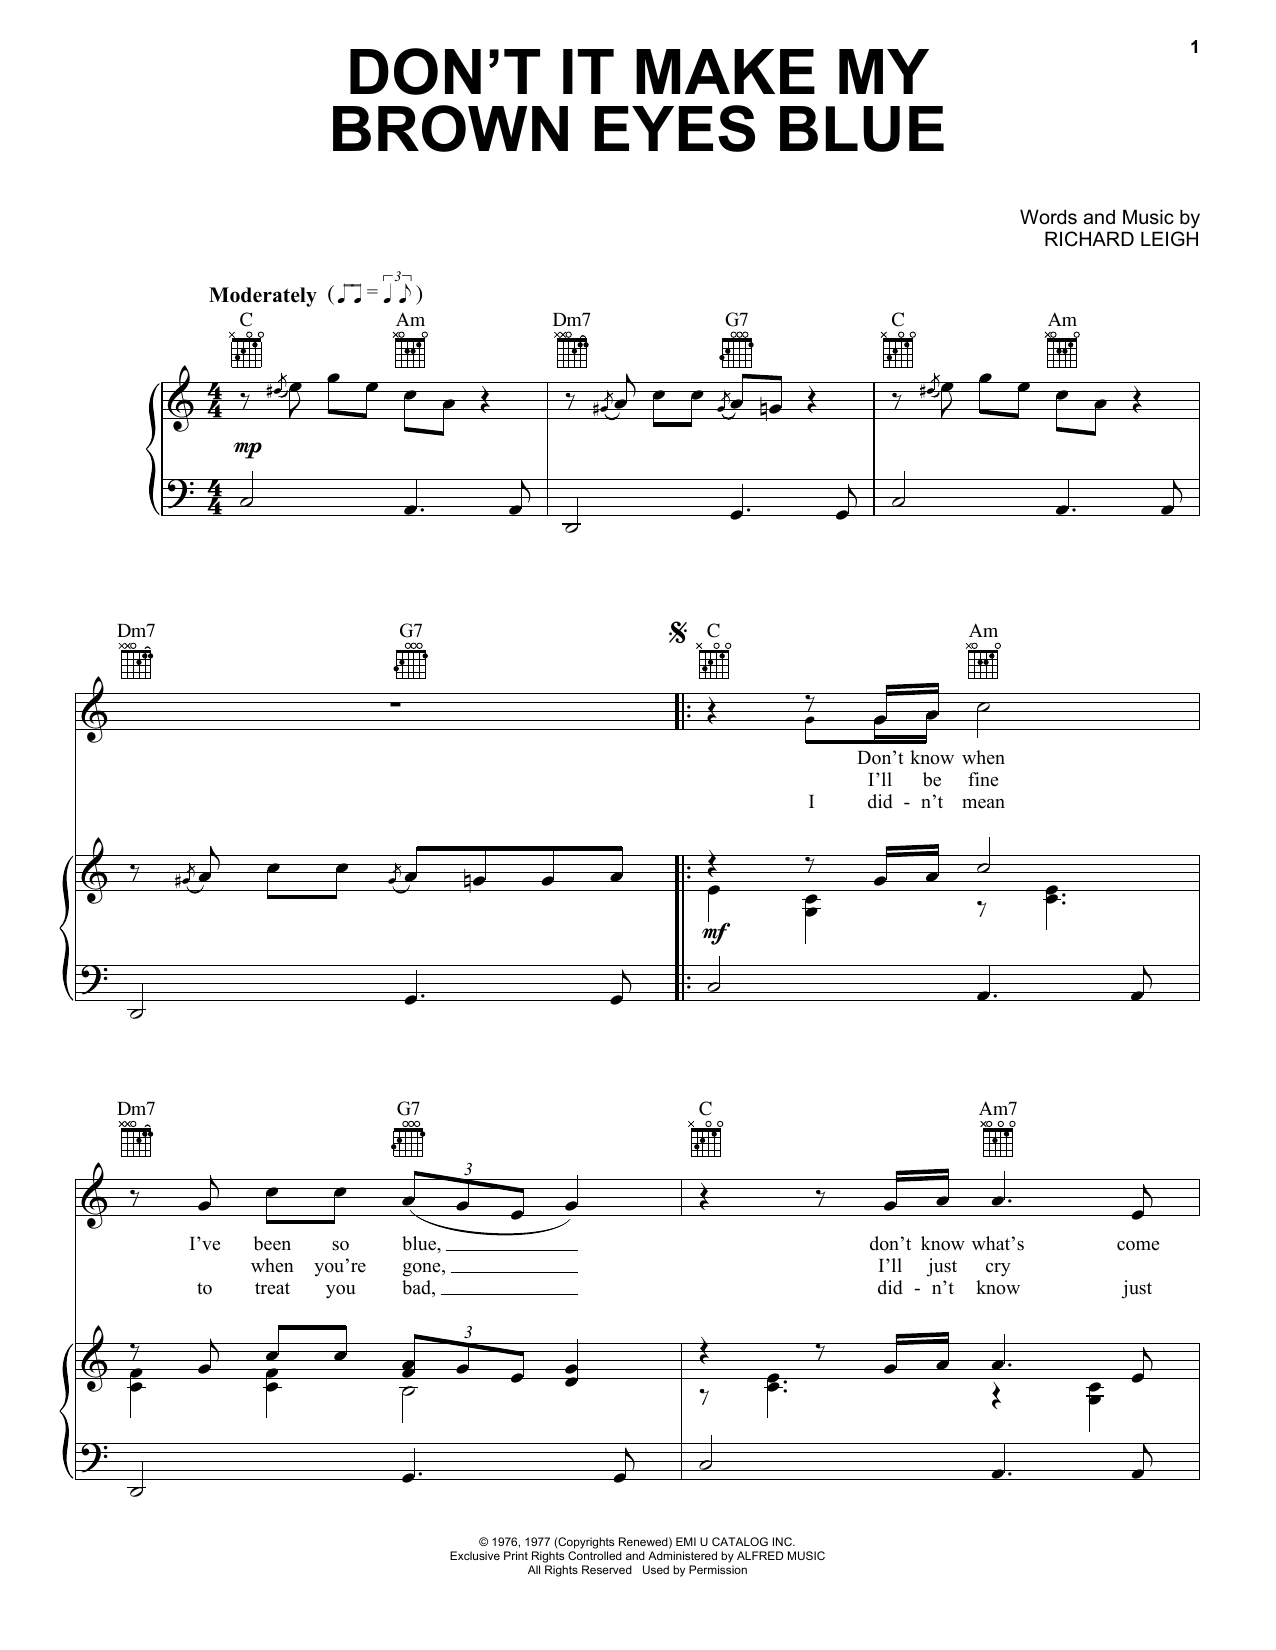 Crystal Gayle Don't It Make My Brown Eyes Blue sheet music notes and chords. Download Printable PDF.